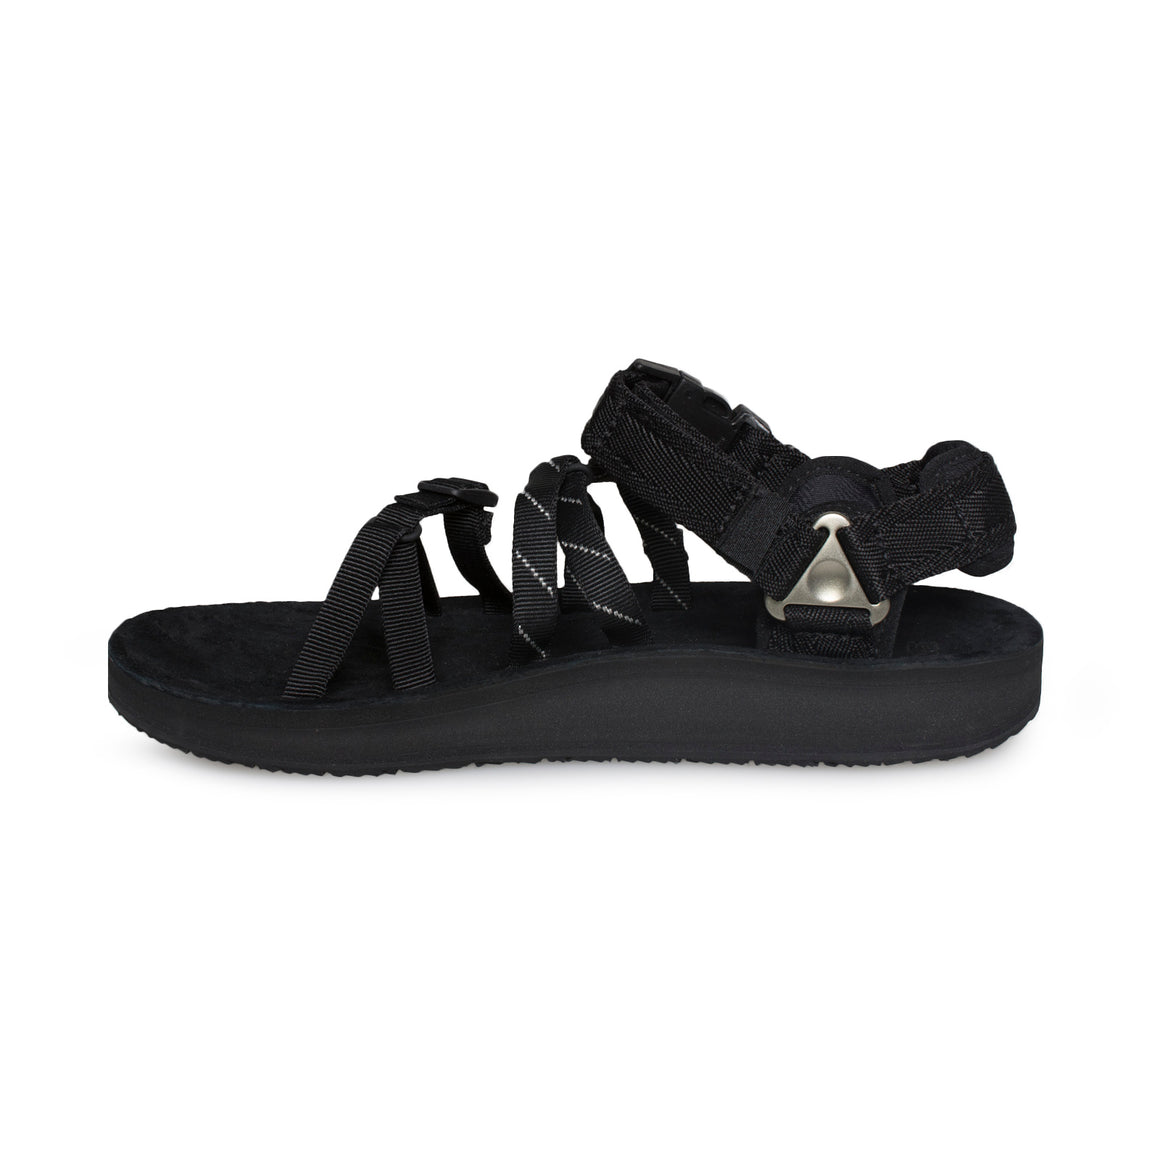 TEVA Alp Premier Emmi Black Sandals - Women's